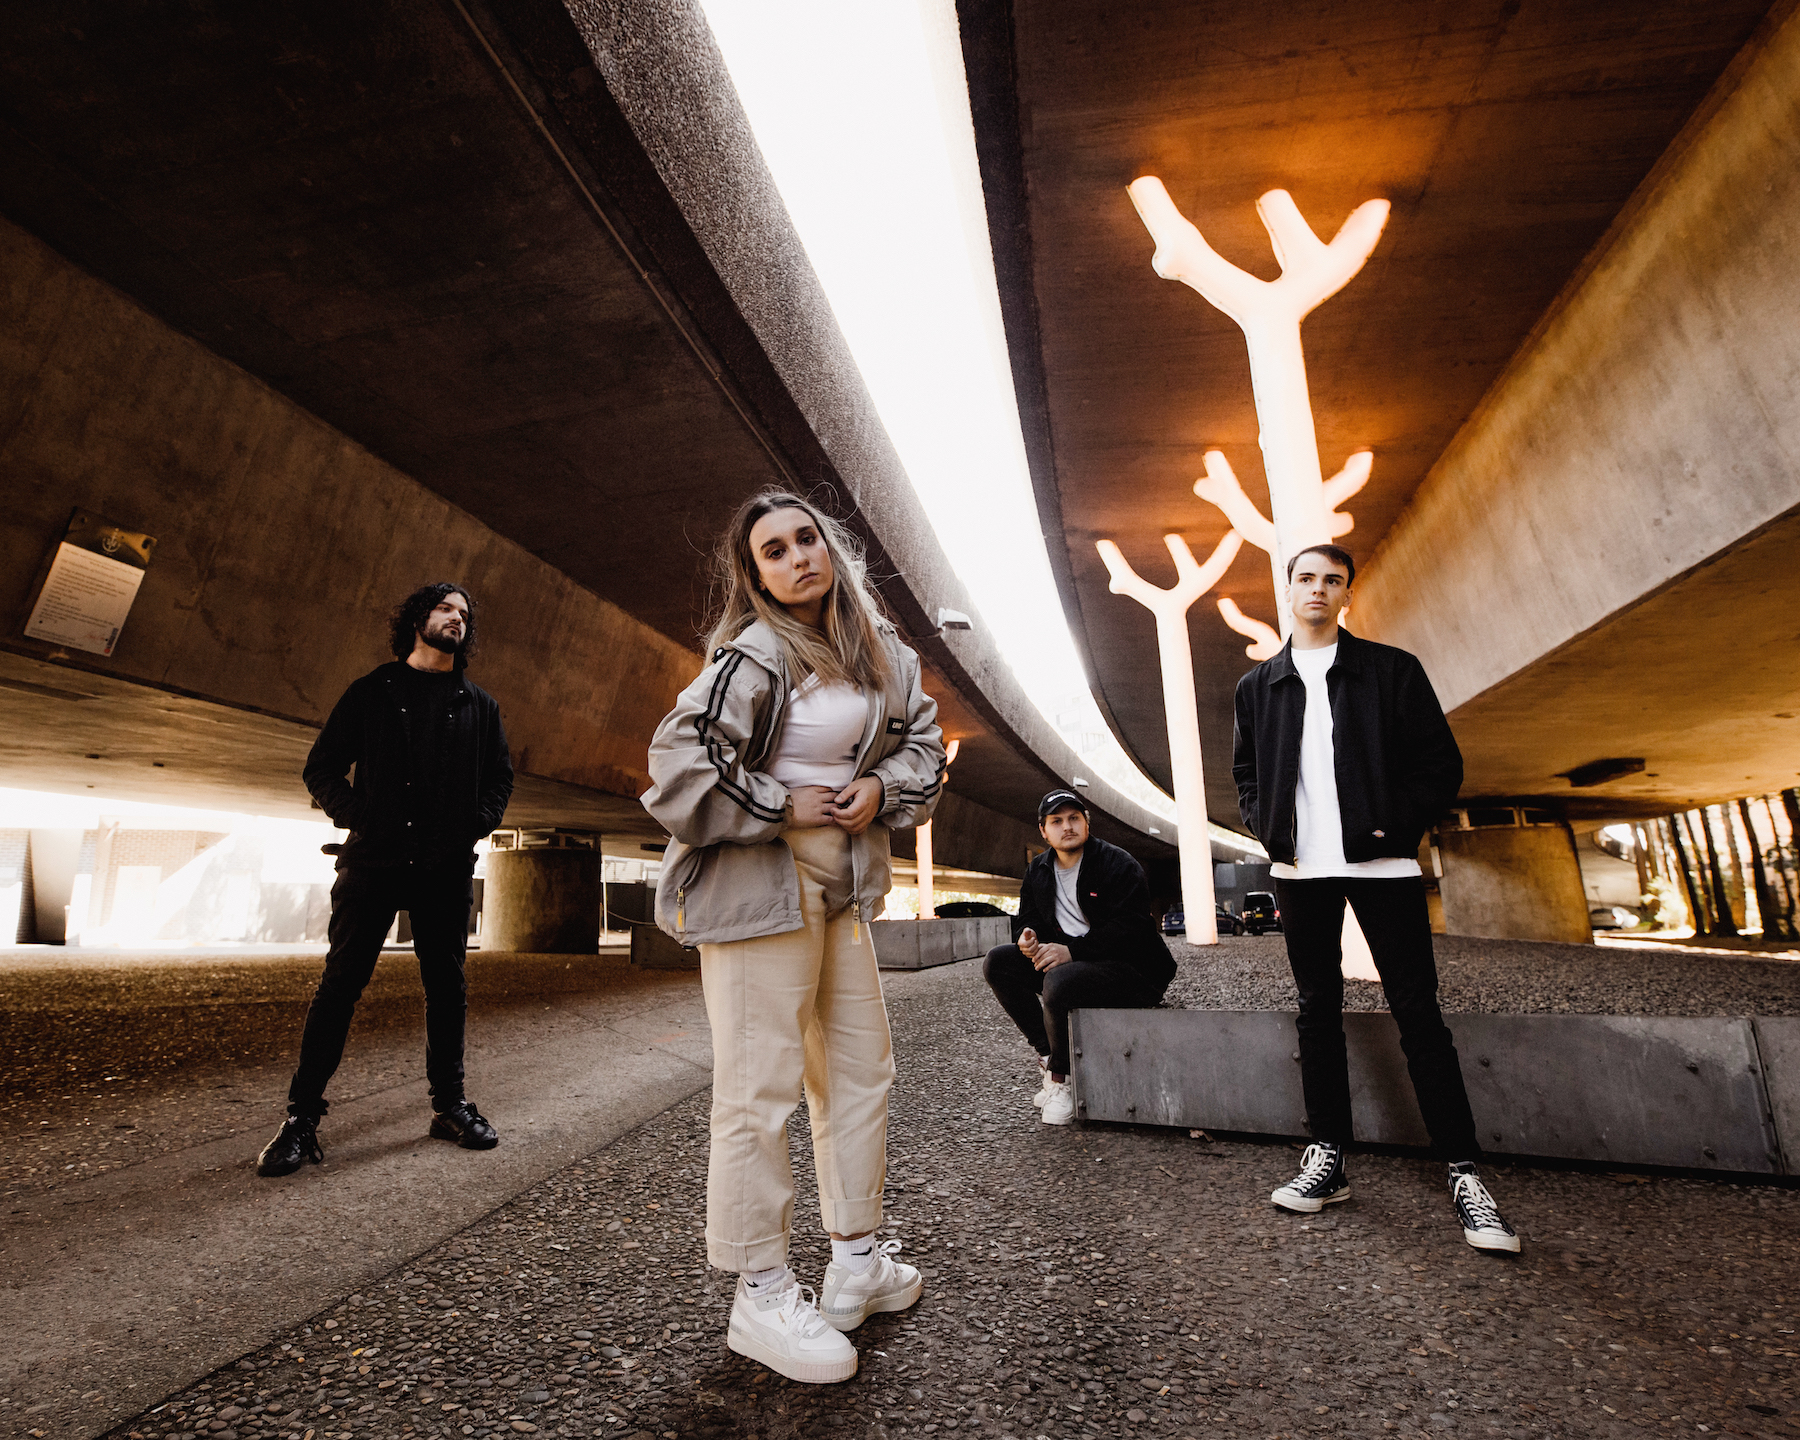 GRENADE JUMPER RELEASE TWO-TRACK WHAT'S LEFT WHEN IT ALL FALLS DOWN  LED BY NEW SINGLE 'BREATHE IN'